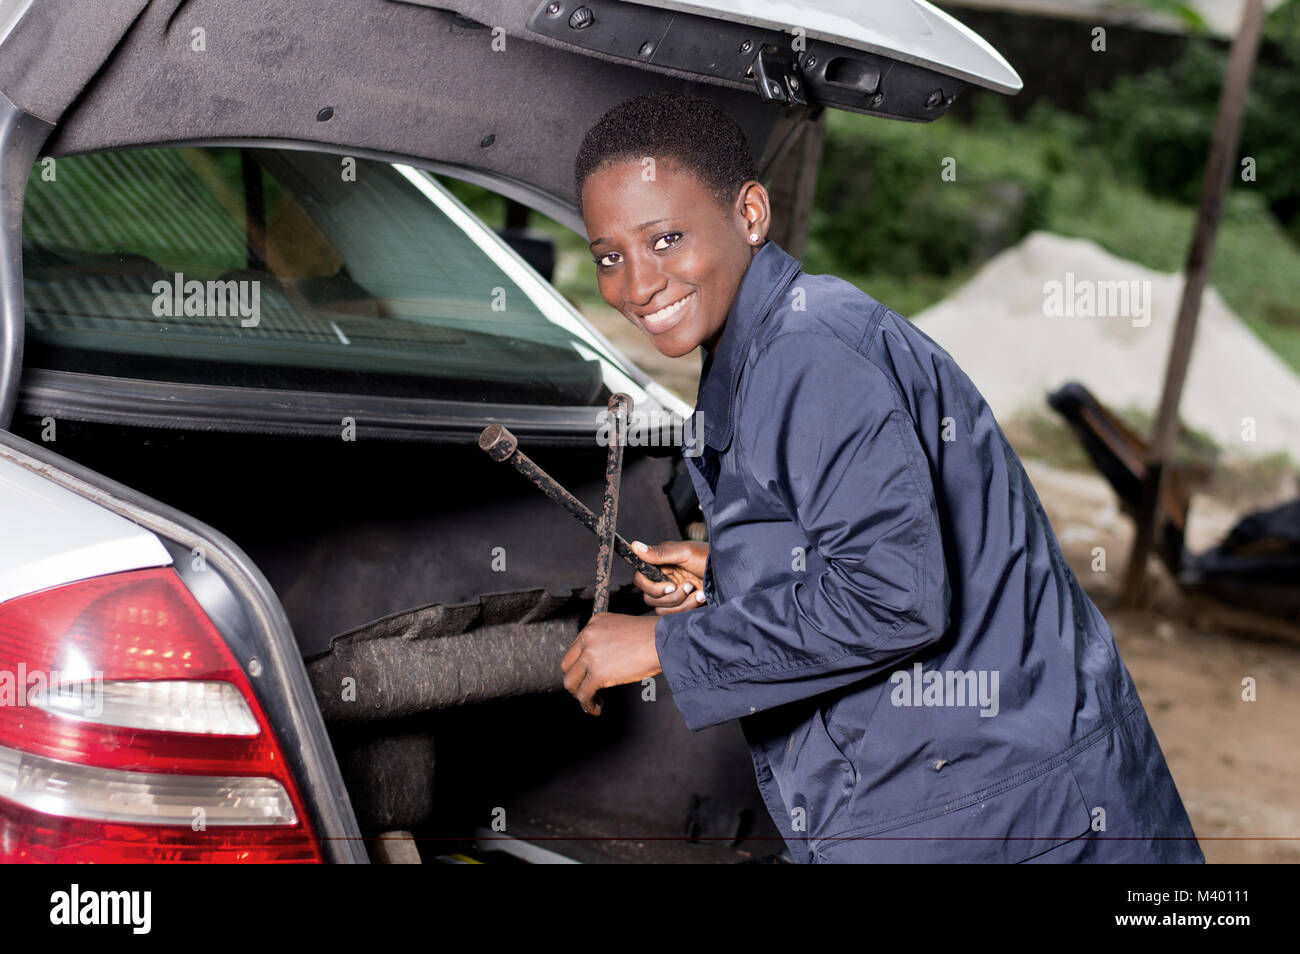 Young smiling mechanic takes her tool from the back of a car in the garage. - Stock Image